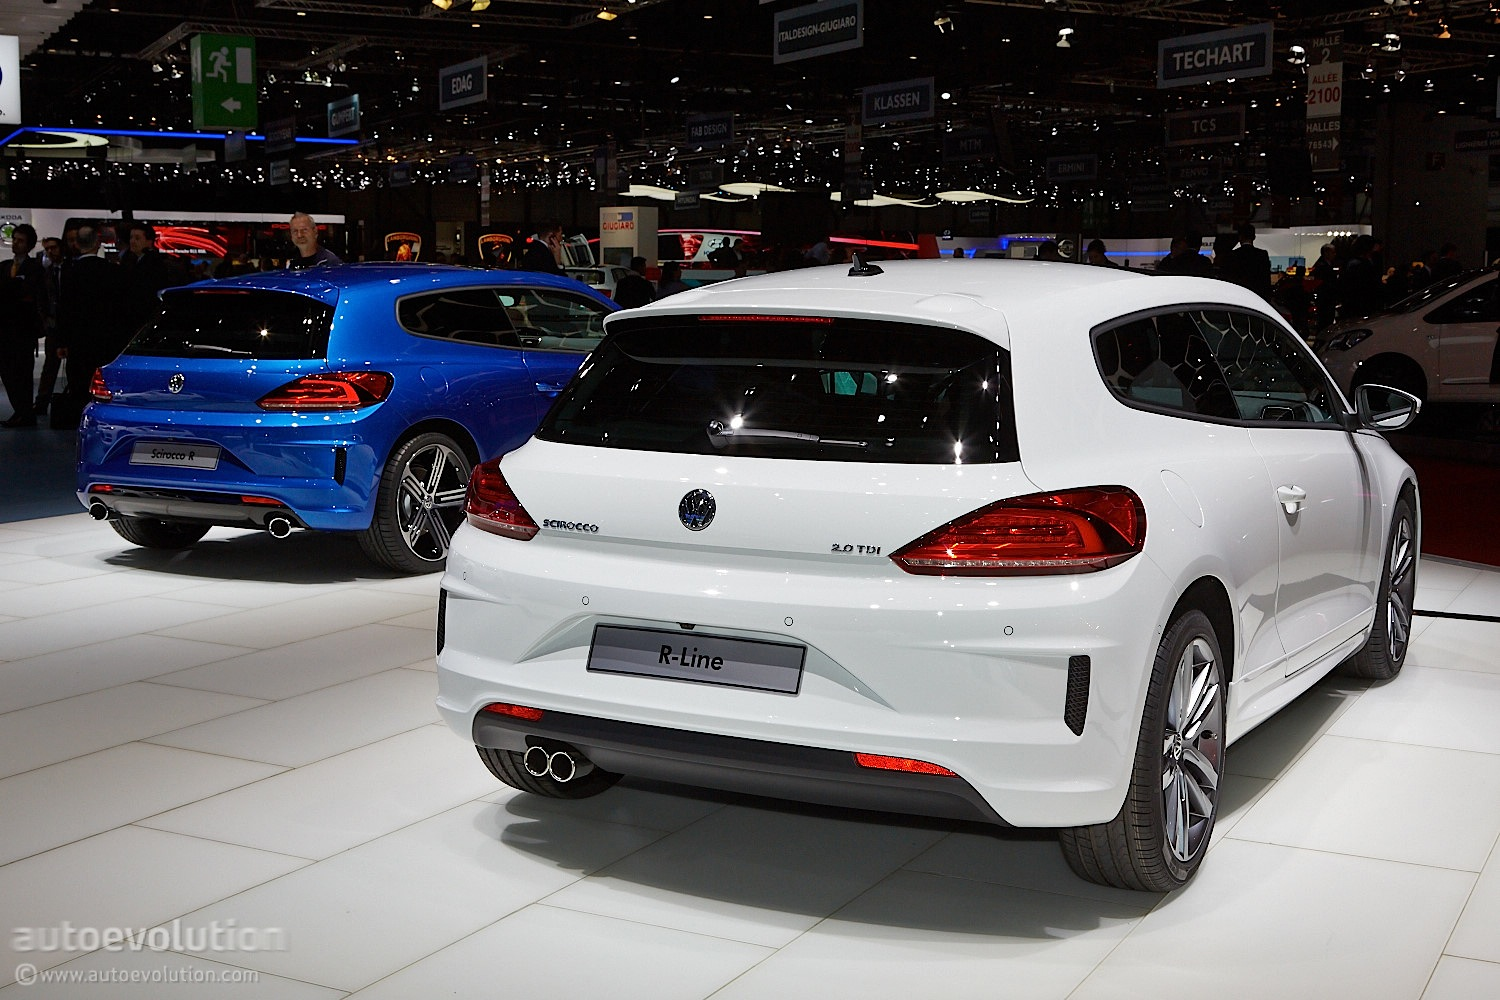 2014 VW Scirocco Facelift Launched in Britain: Pricing and Details Announced - autoevolution